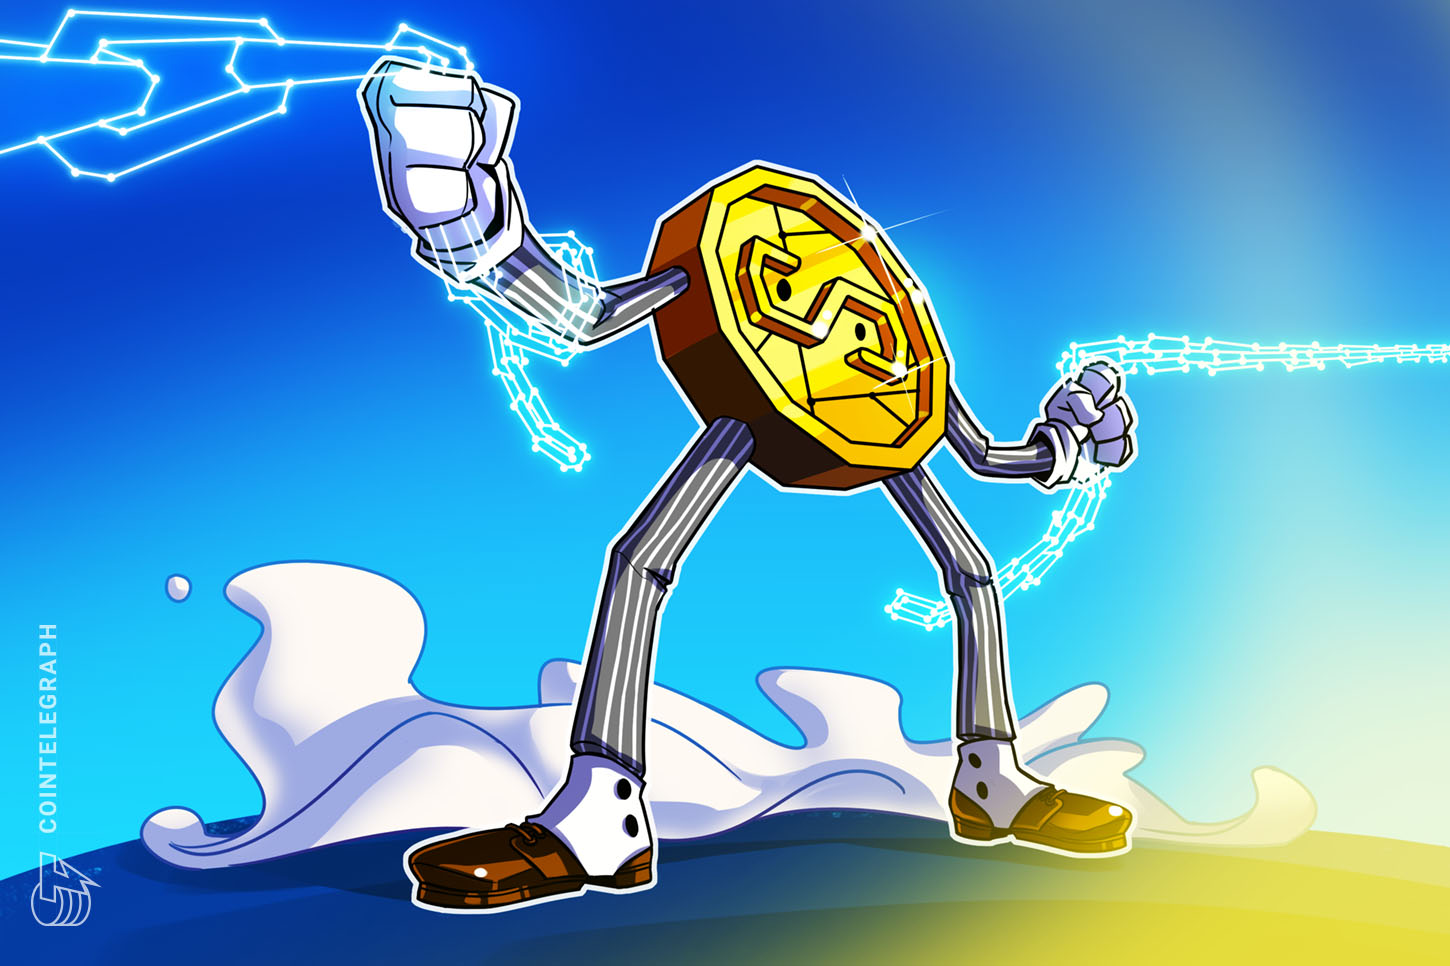 BIS report suggests 'embedded' monitoring tool for stablecoins